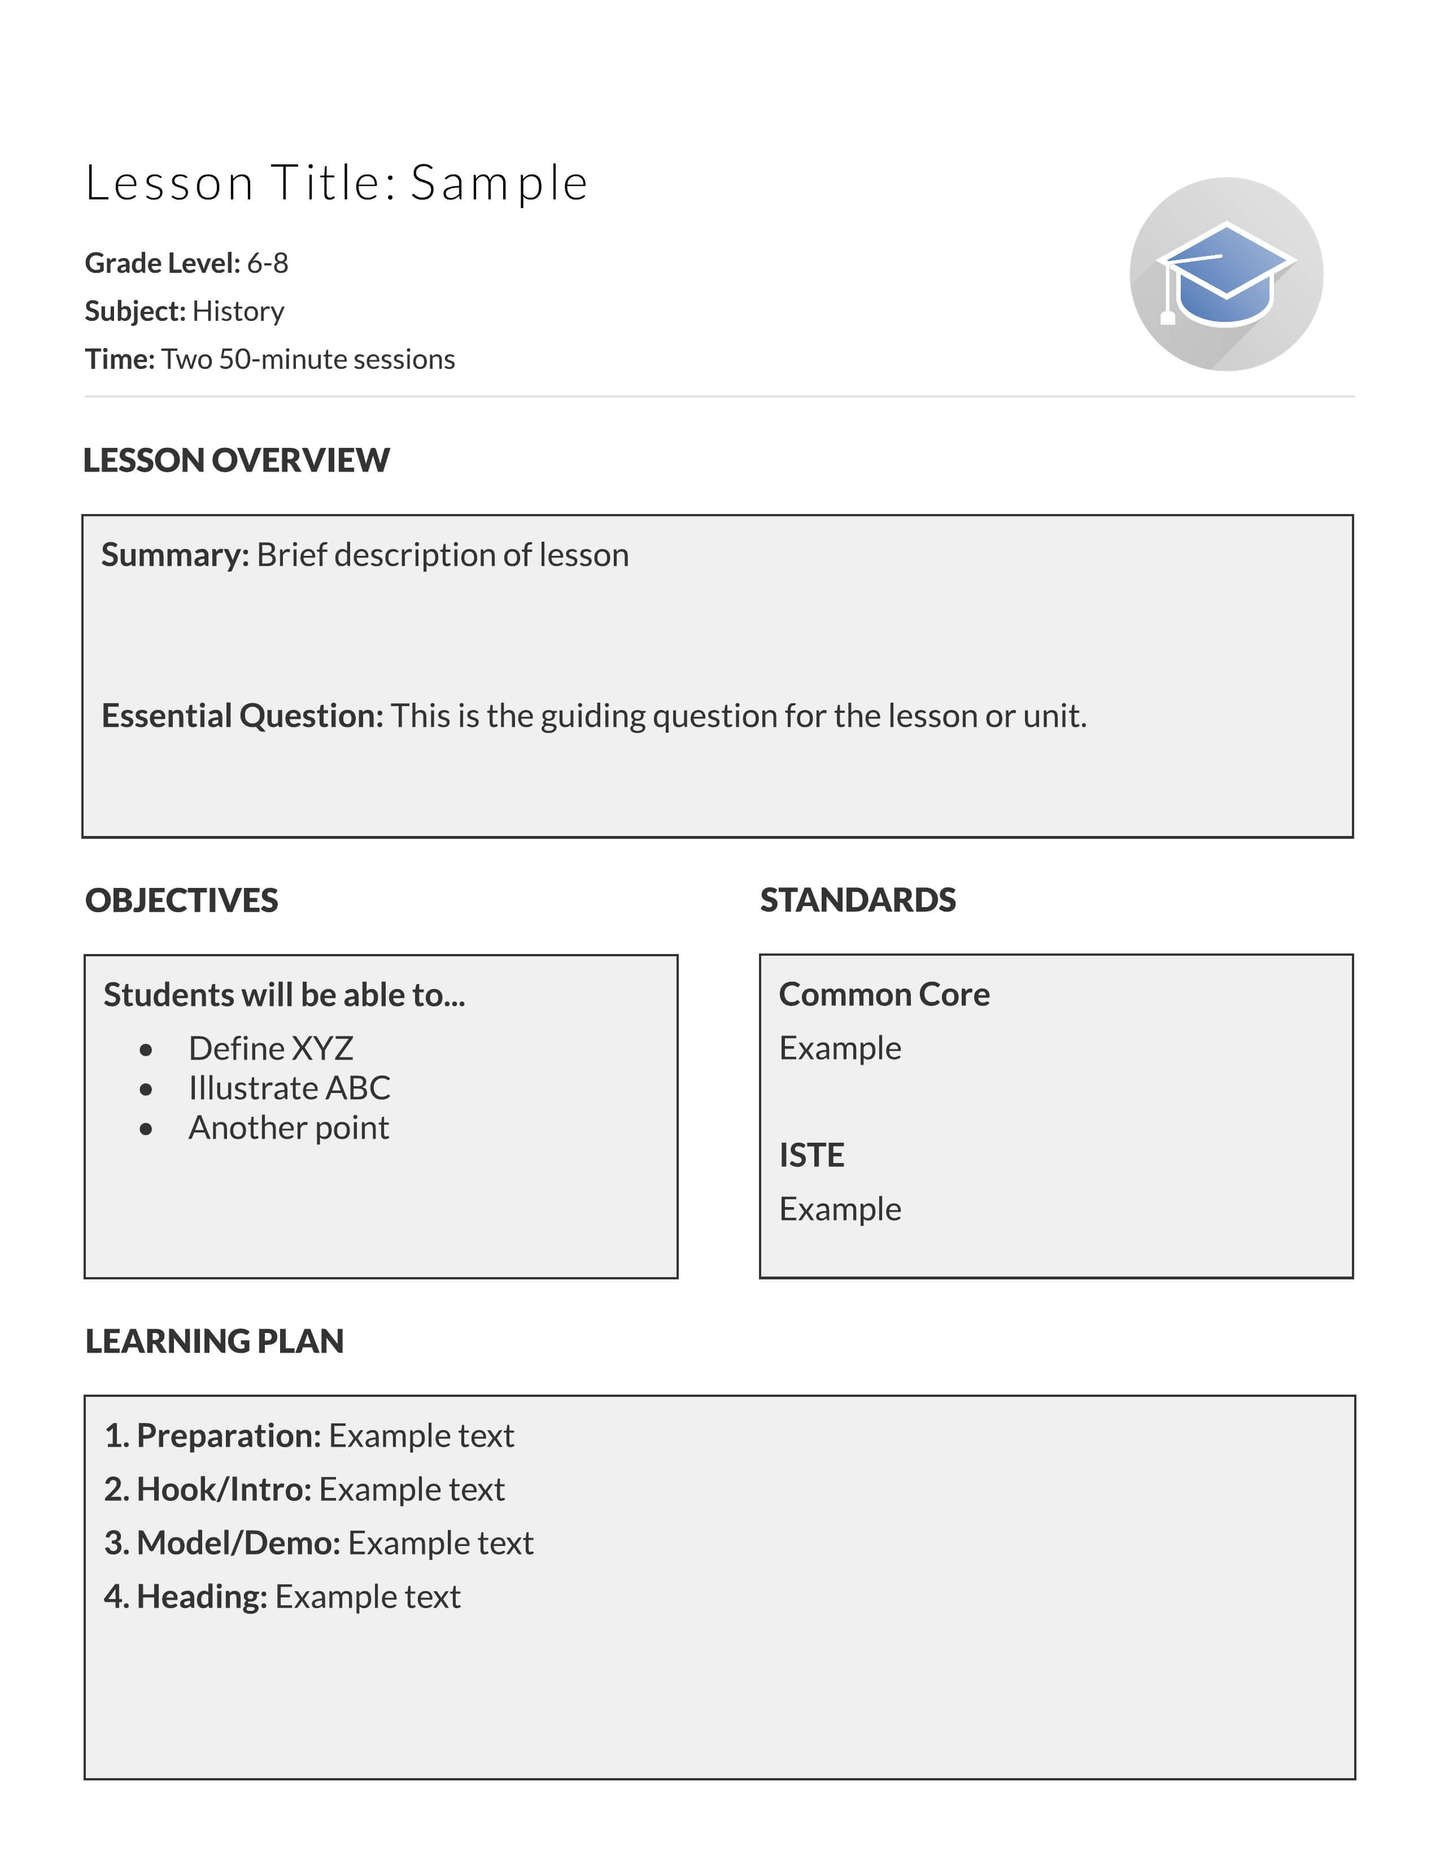 Basic Lesson Plan Template 5 Free Lesson Plan Templates & Examples Lucidpress